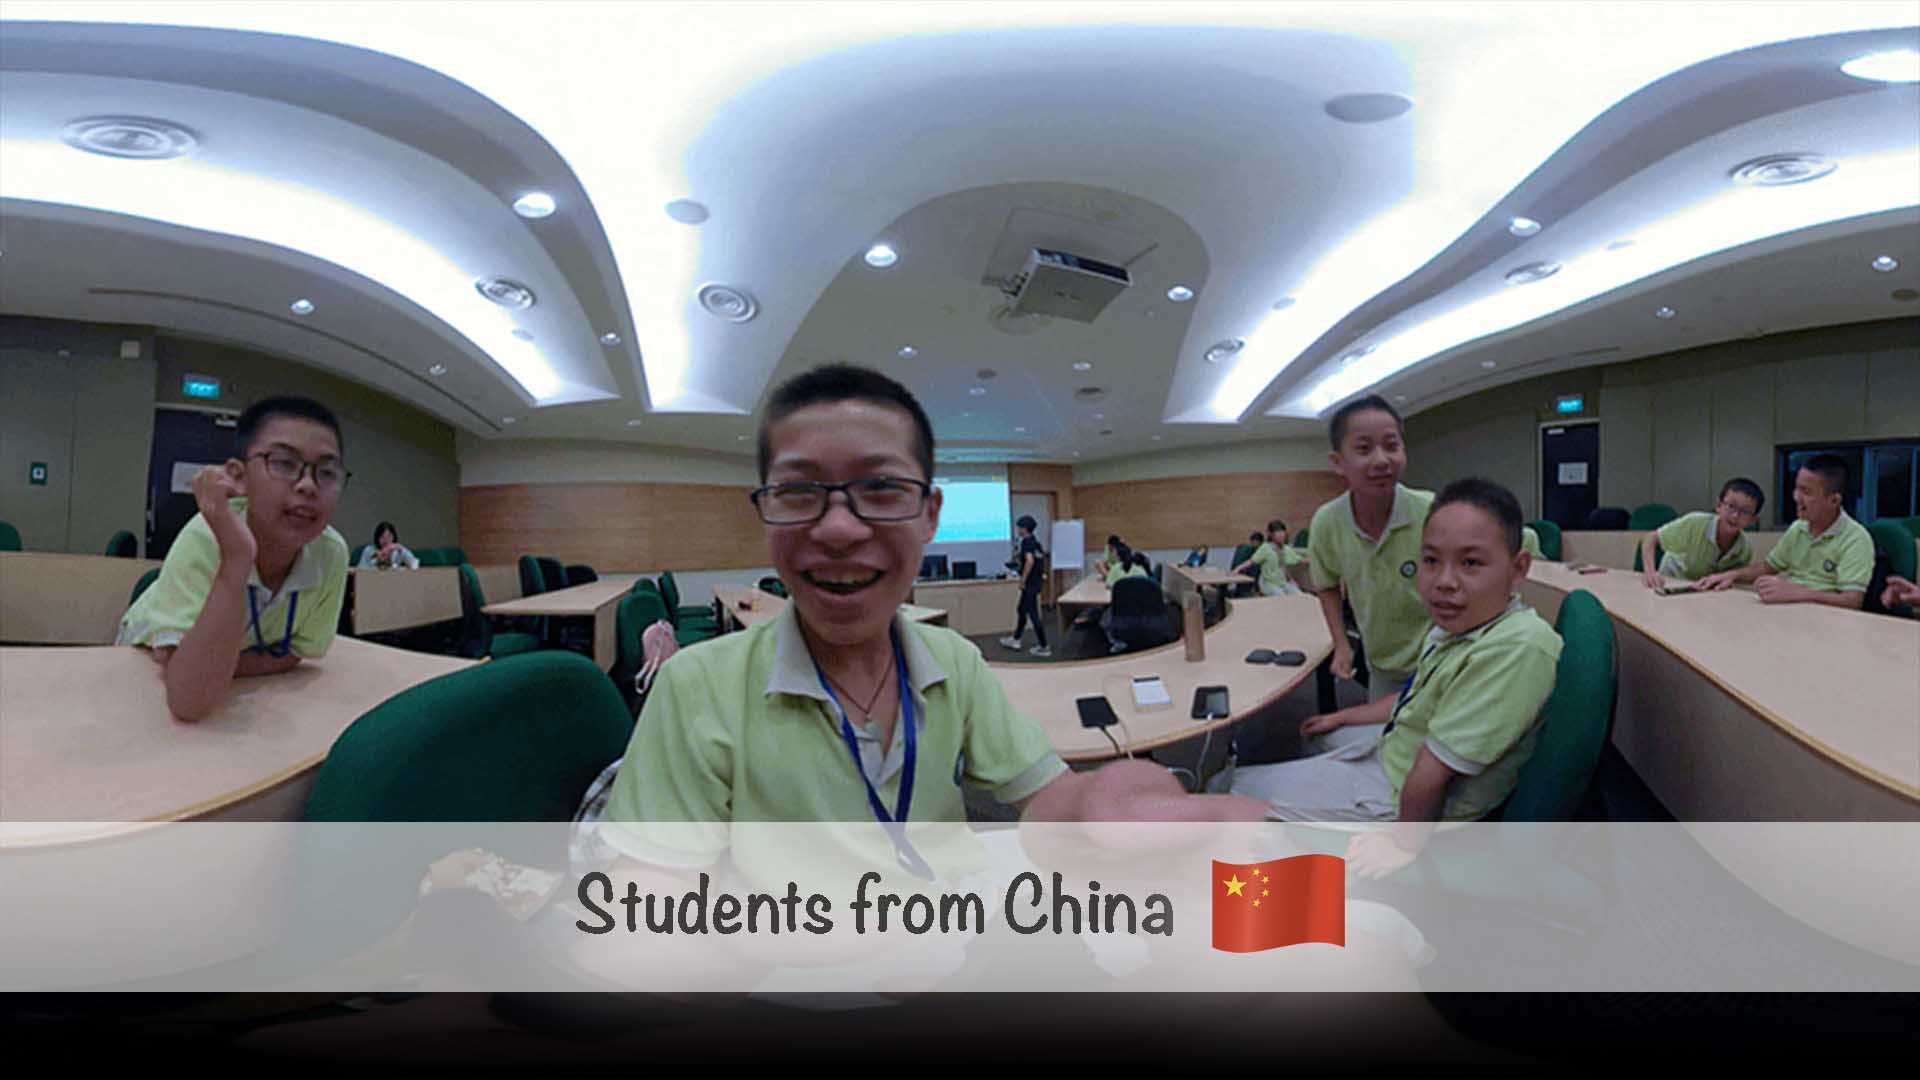 AR VR Workshop for Students from China